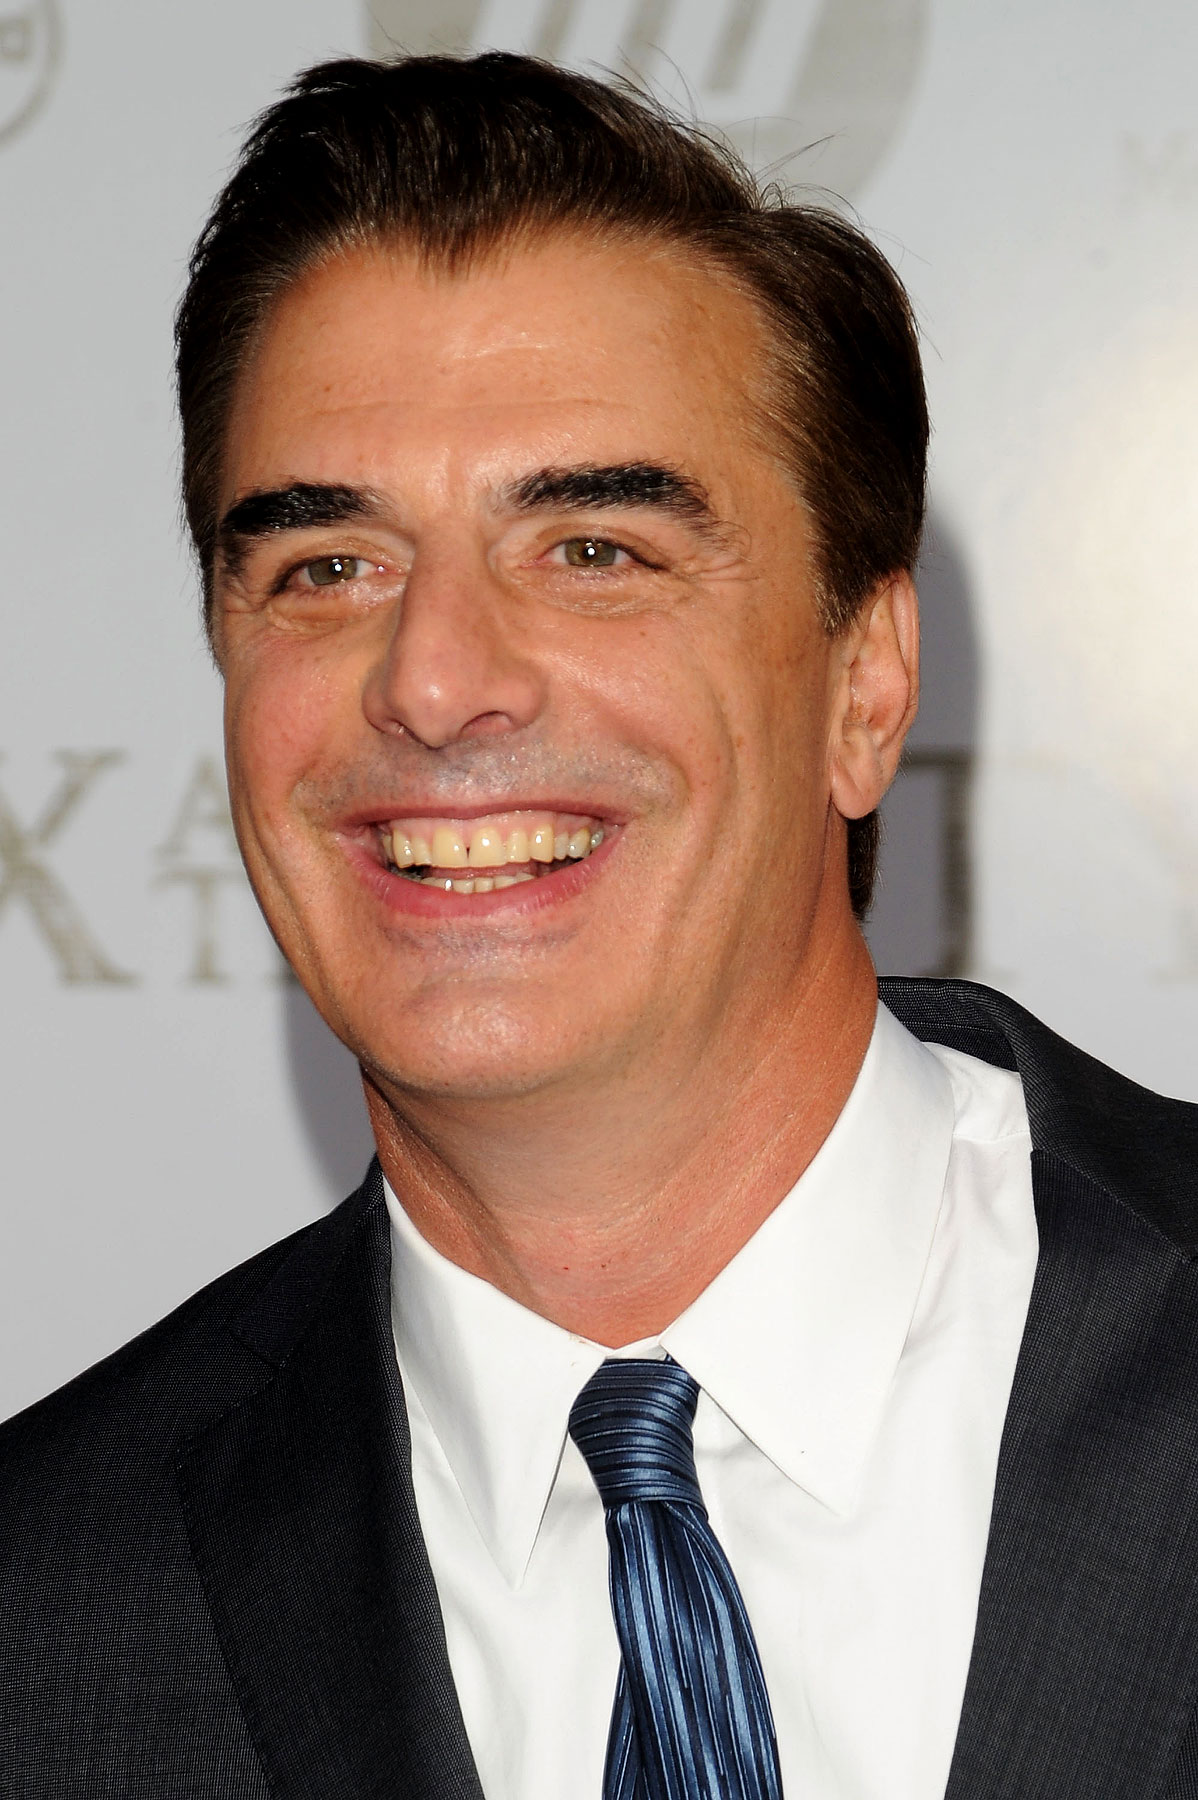 The 62-year old son of father Charles J. Noth and mother Jeanne Parr, 185 cm tall Chris Noth in 2017 photo